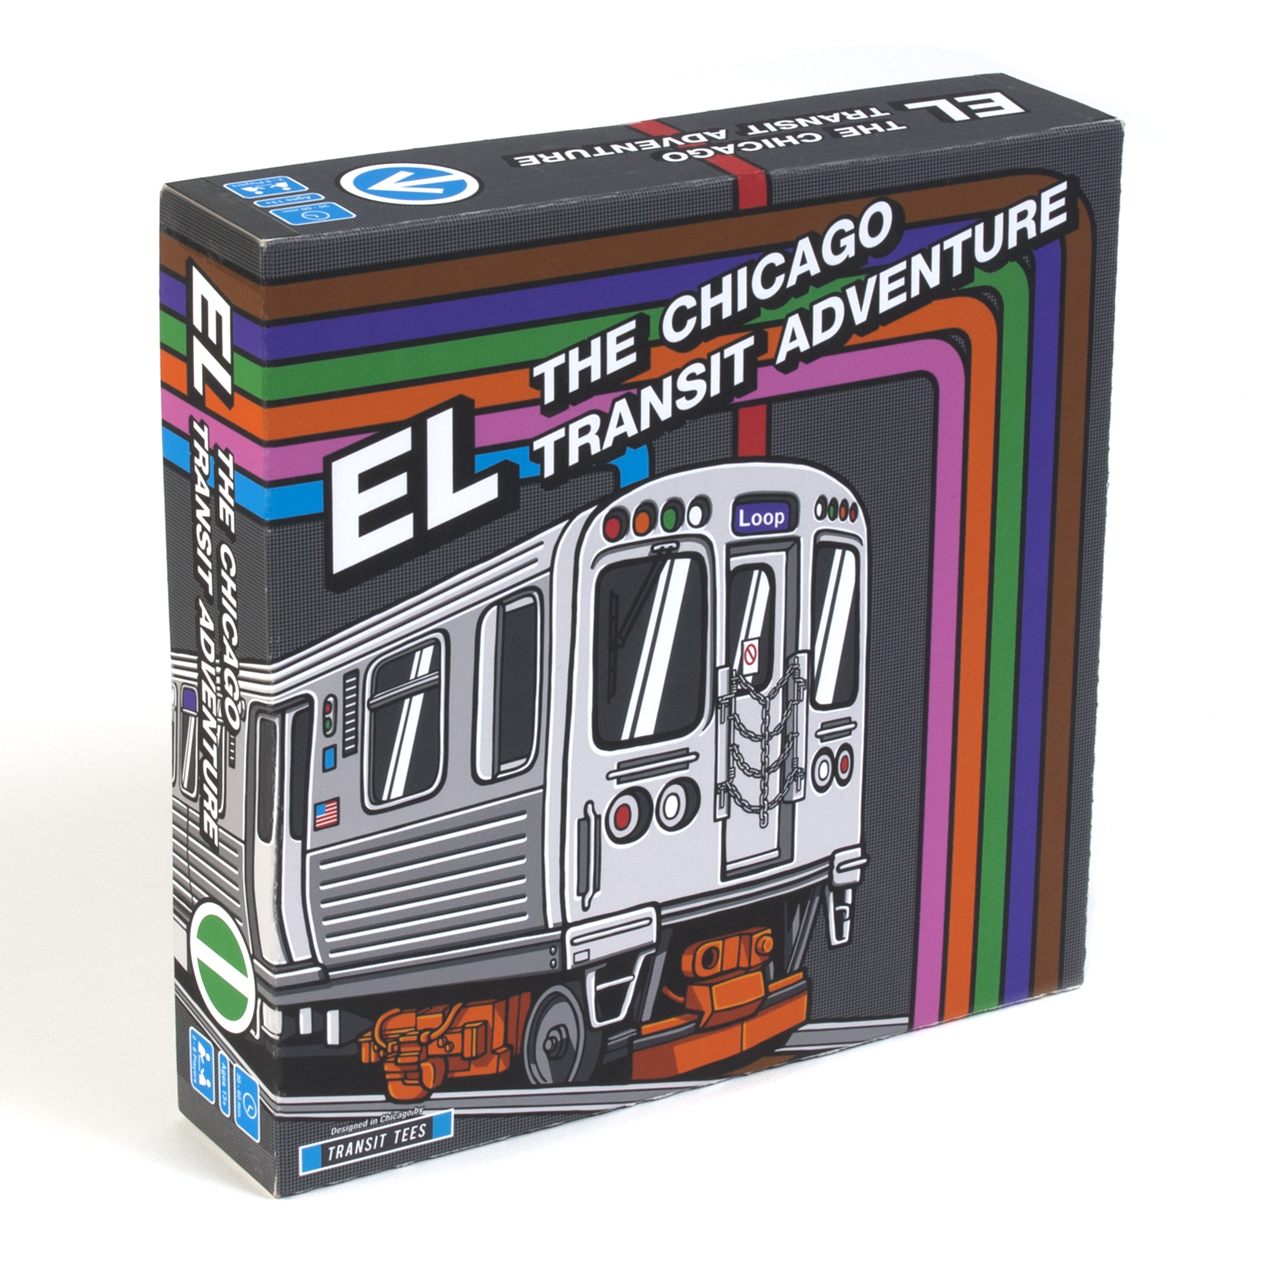 El chicago transit adventure board game holiday gift guide